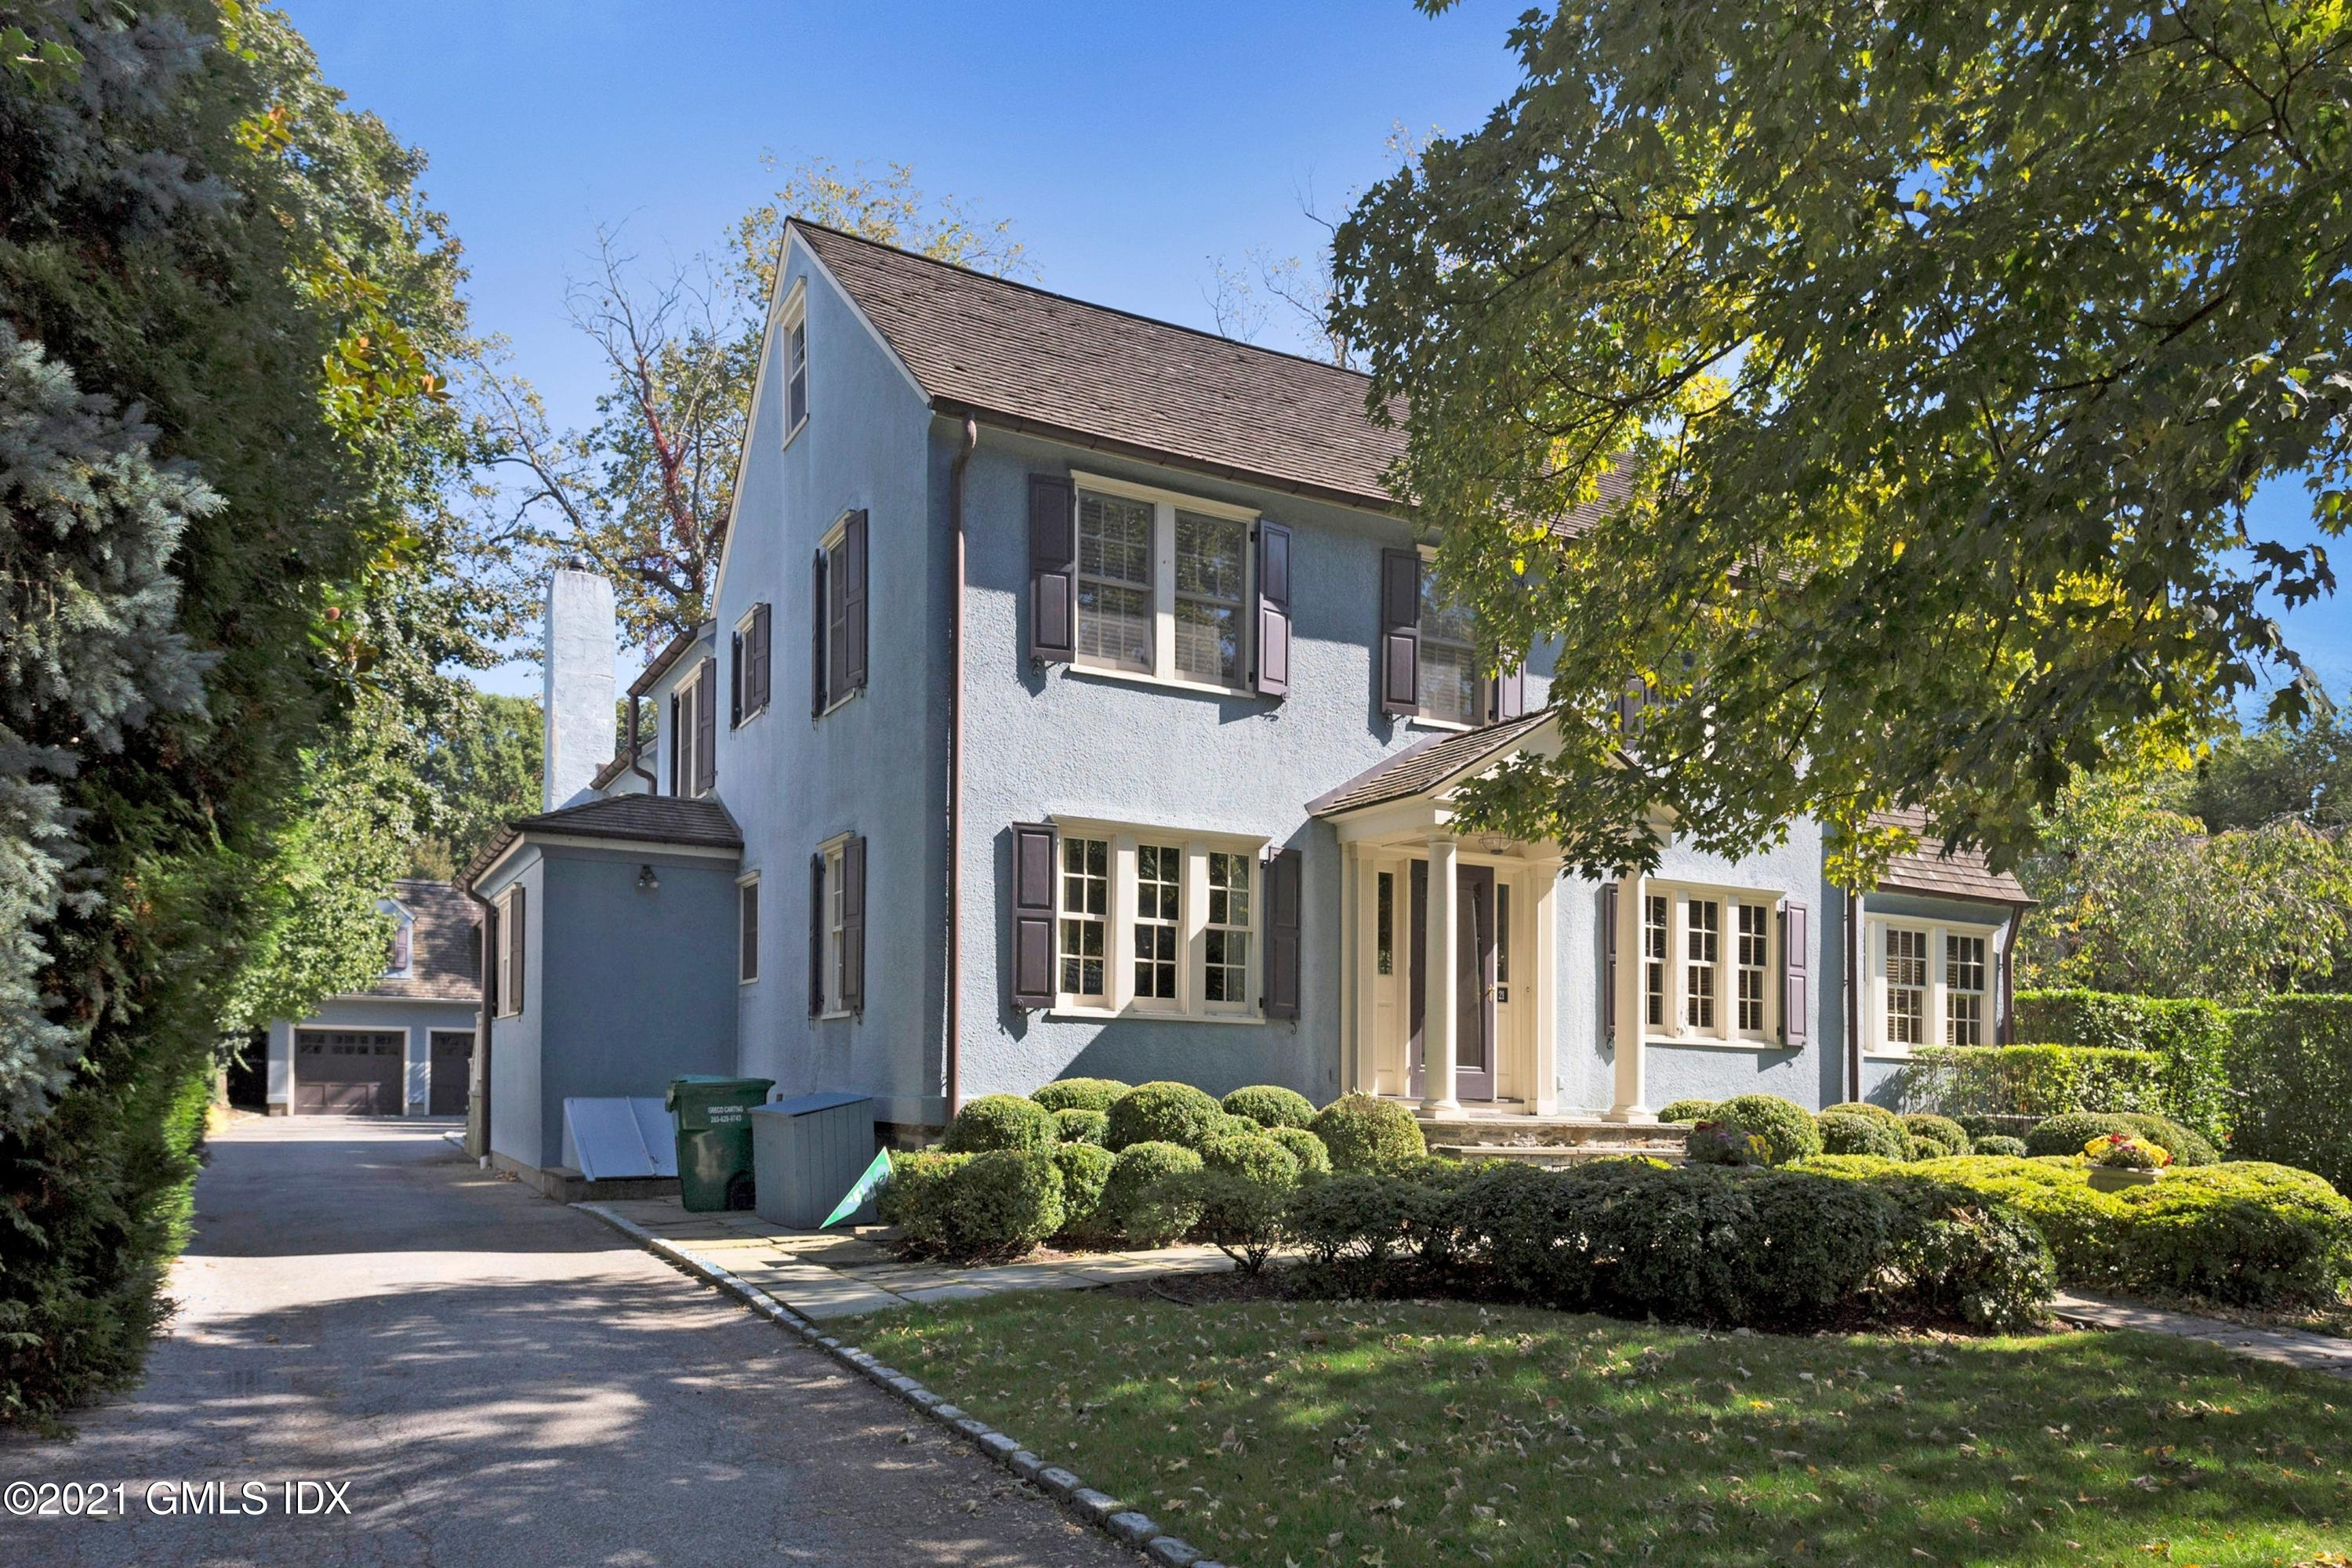 21 Maher Avenue, Greenwich, Connecticut 06830, 4 Bedrooms Bedrooms, ,4 BathroomsBathrooms,Single family,For Rent,Maher,112239